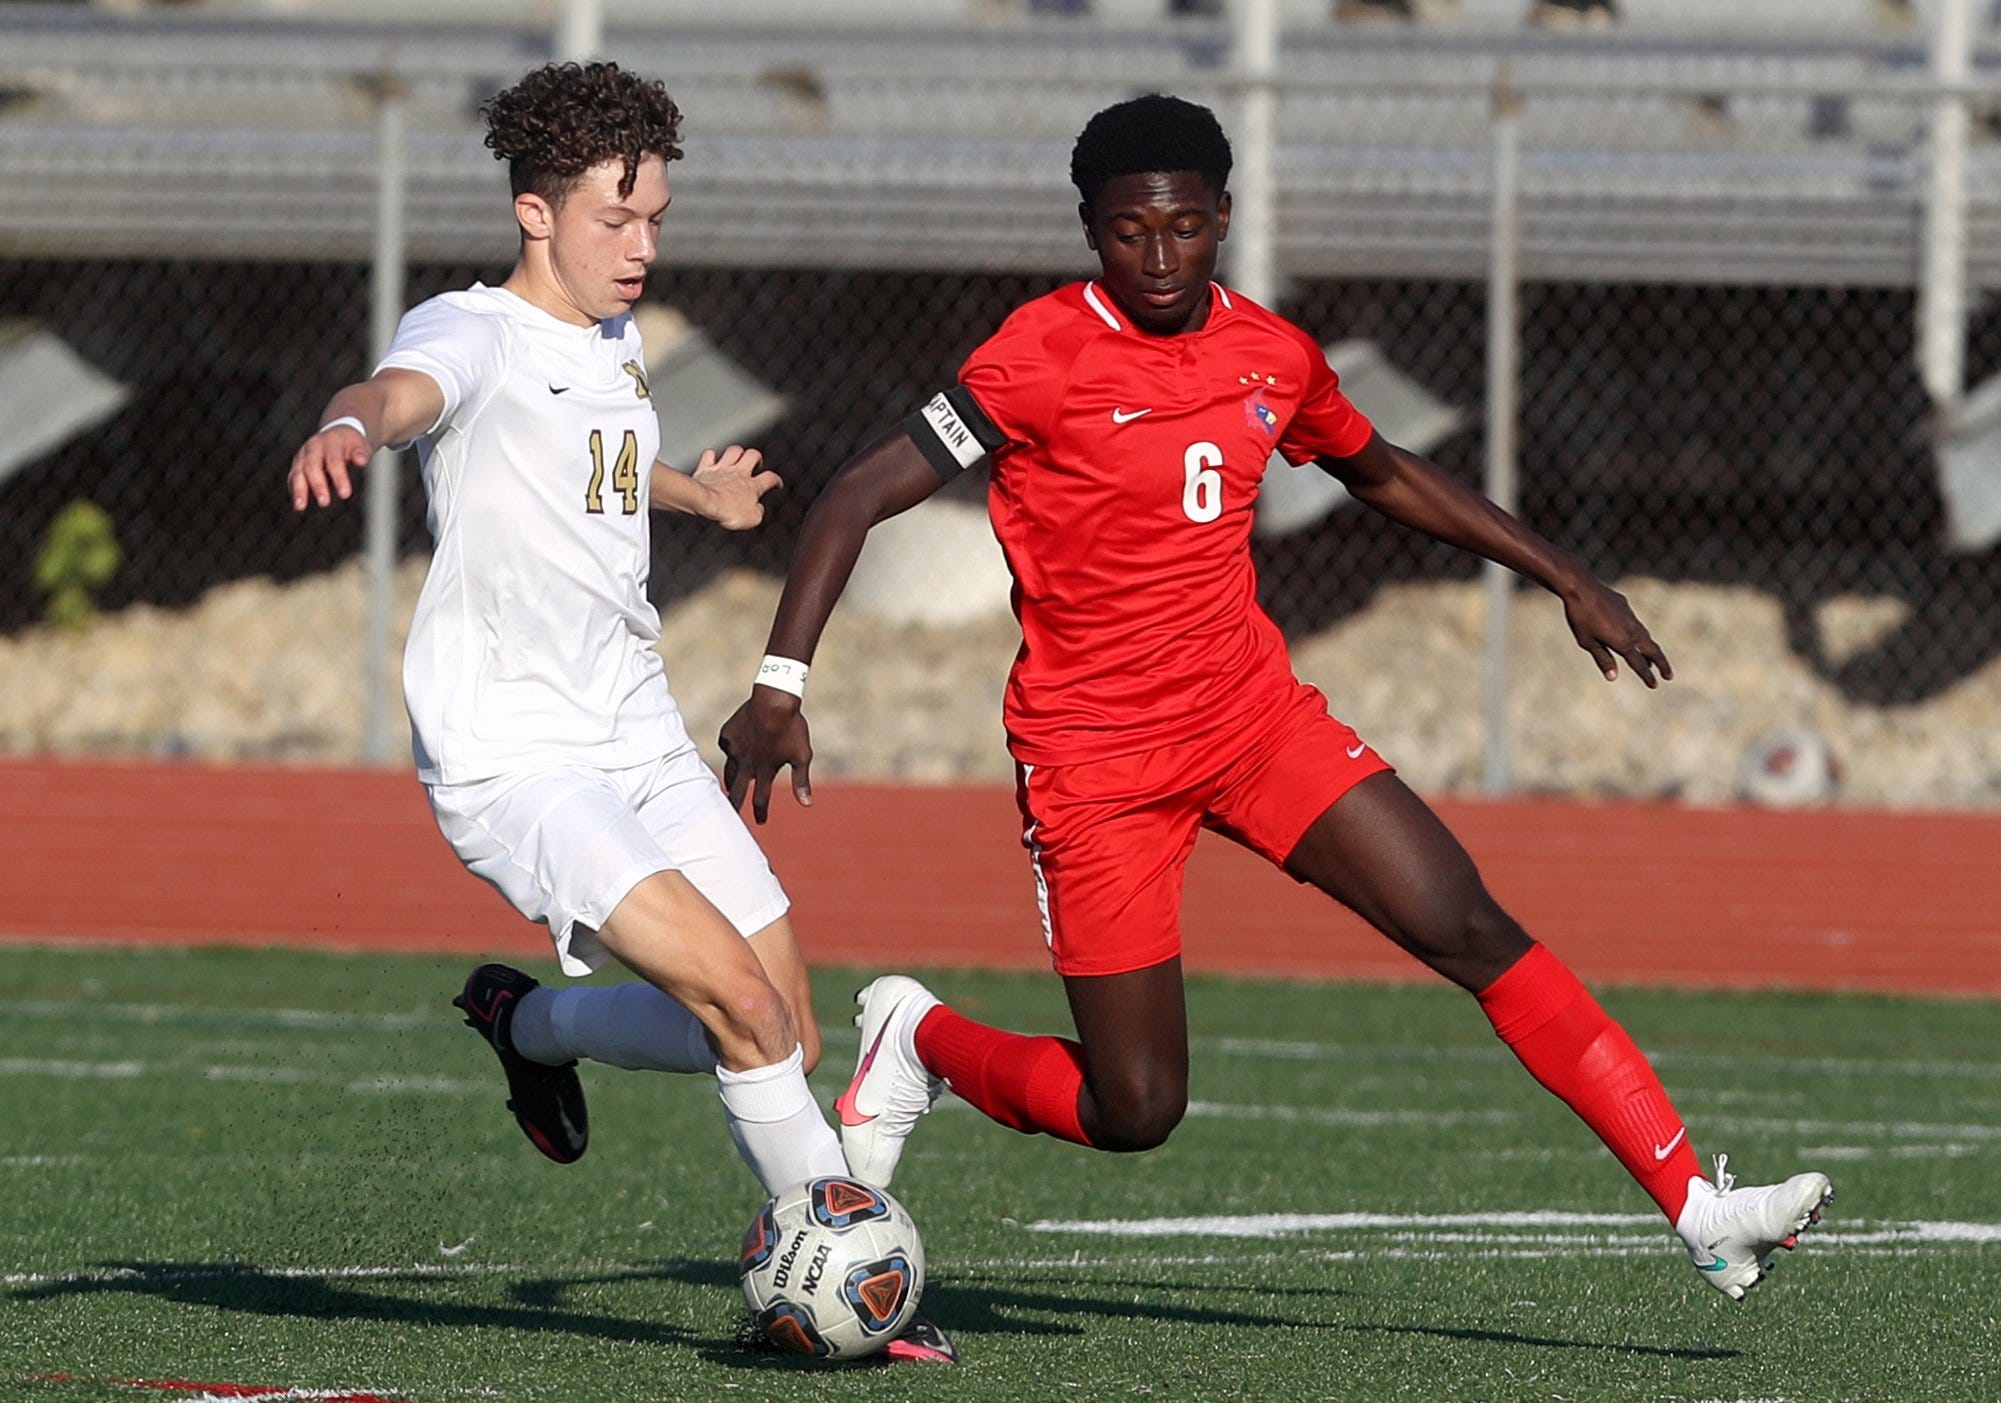 New Albany's Derrick Harris and Thomas Worthington's Caleb Opoku battle for possession during a Division I OHSAA Regional Final game Nov. 7, 2020, at Thomas Worthington High School in Worthington, Ohio.